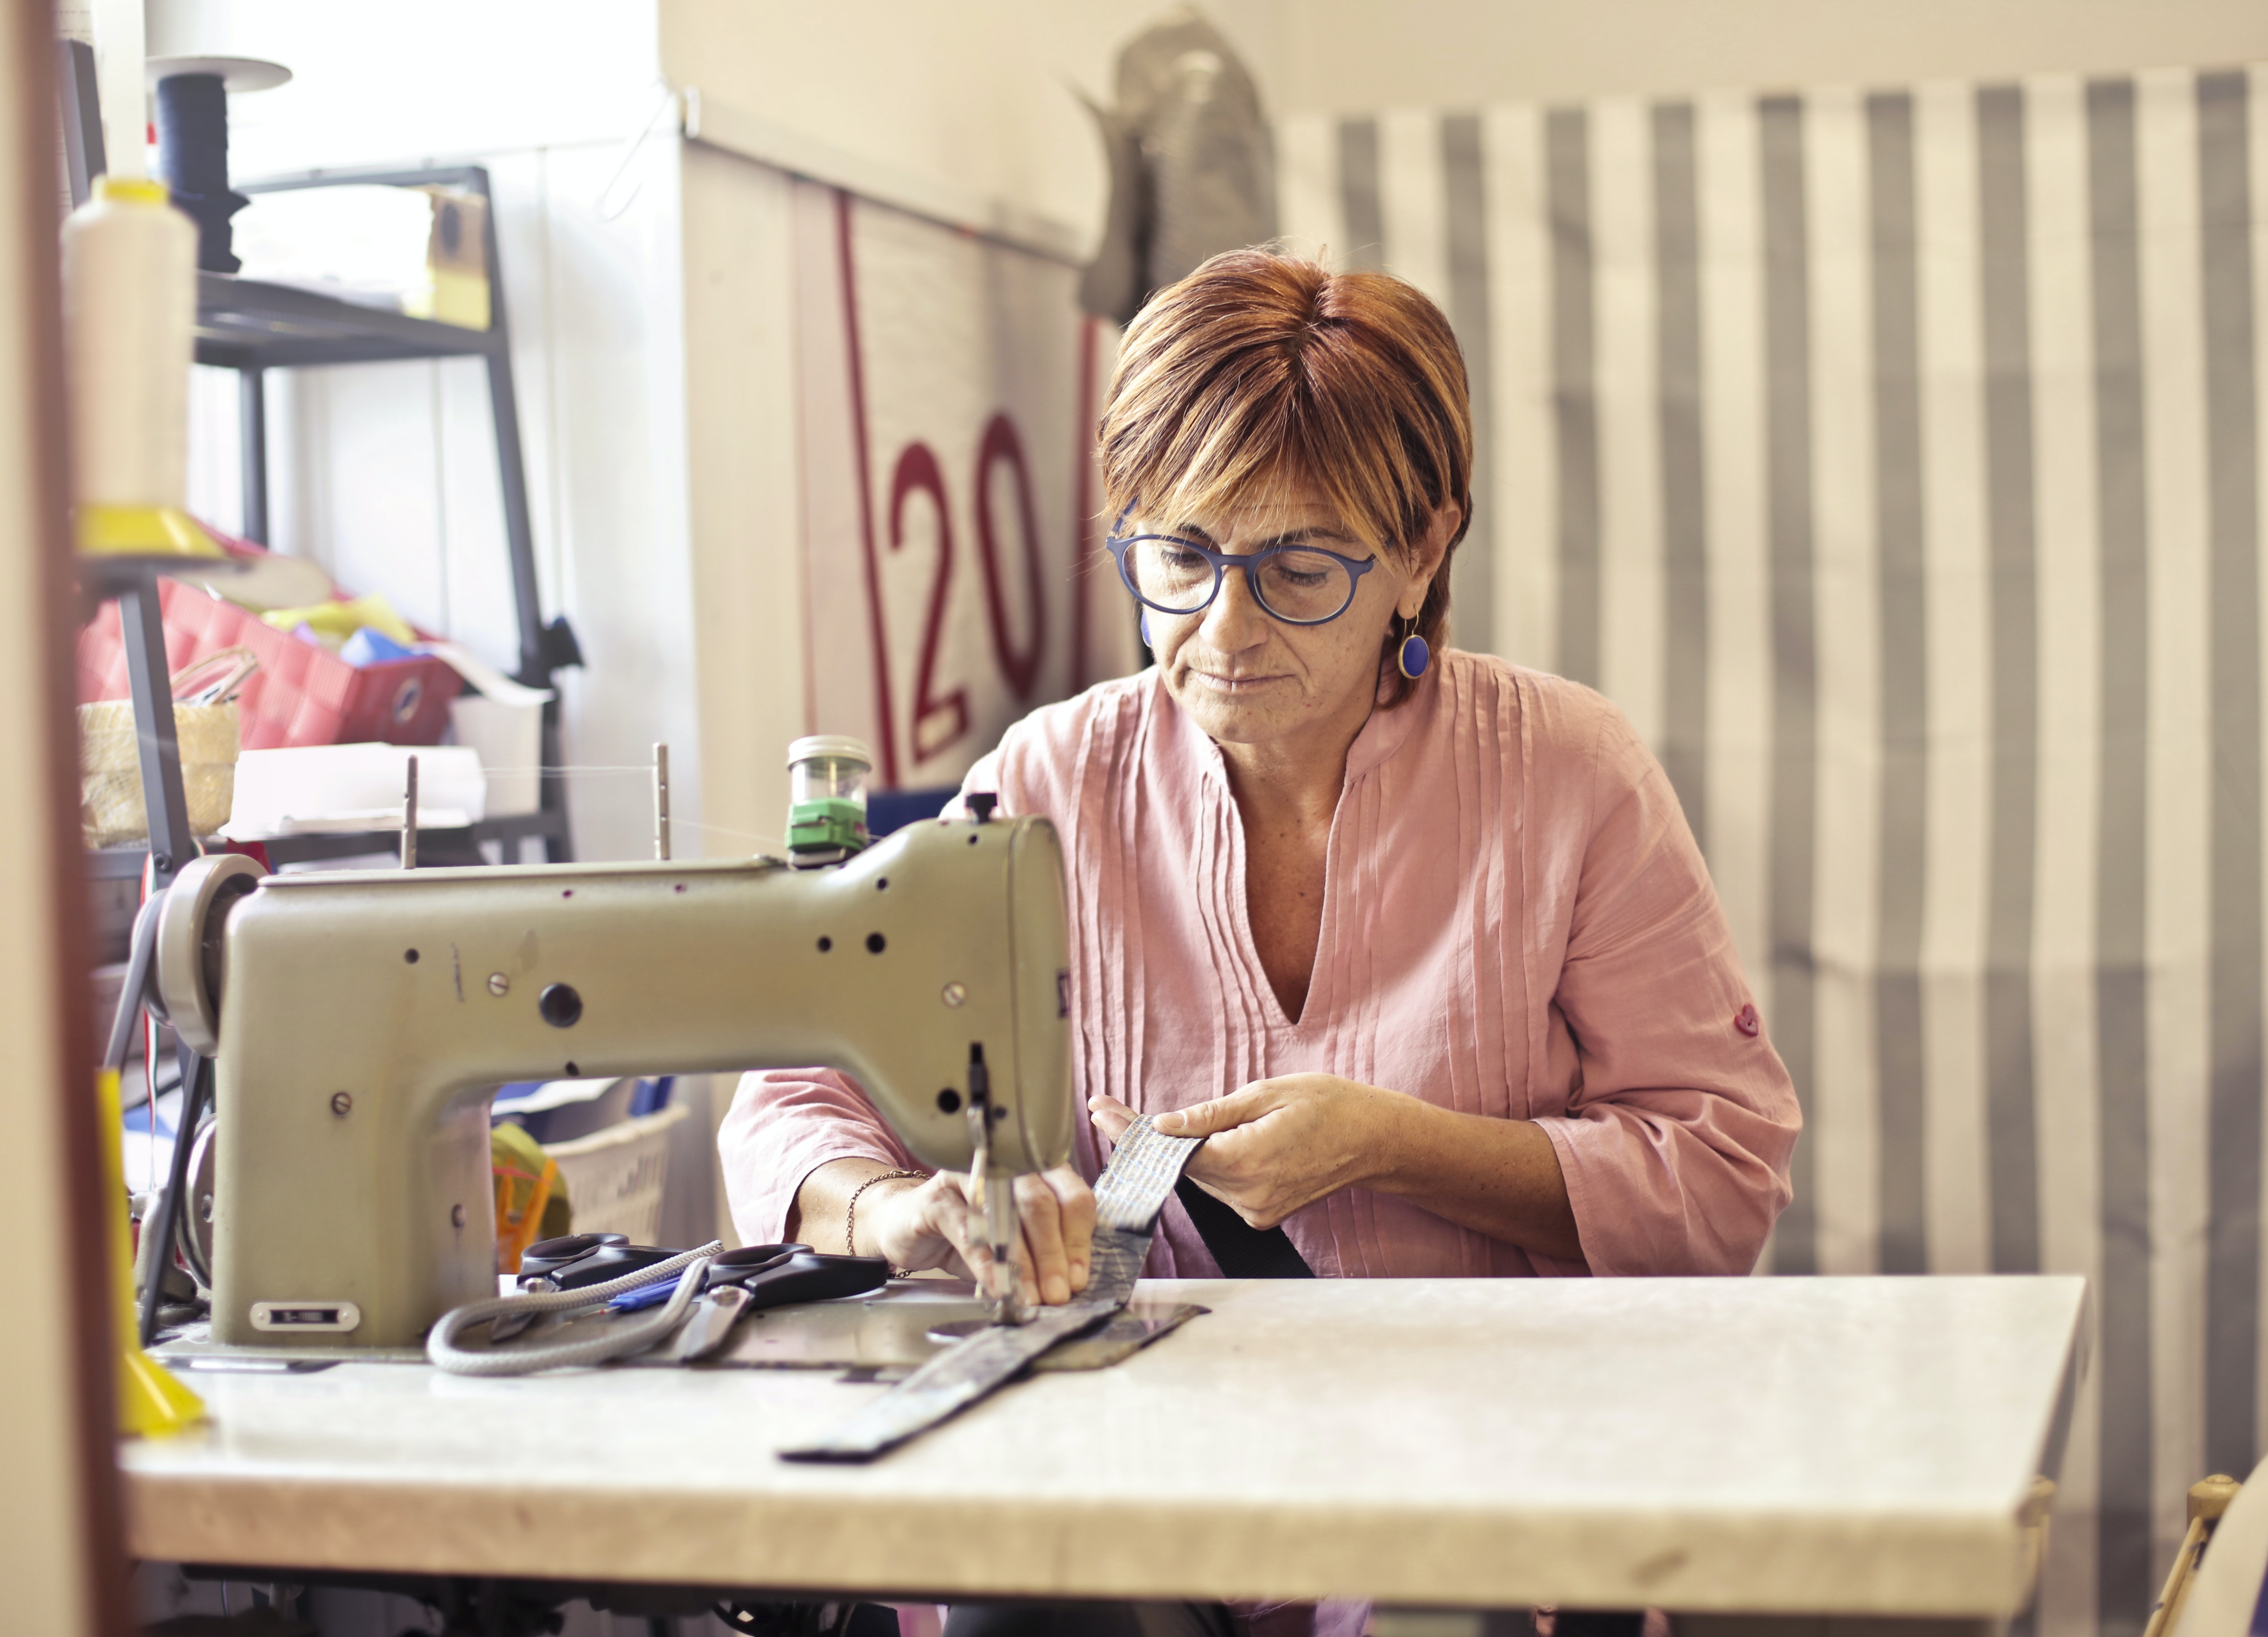 middle aged woman working on sewing machine